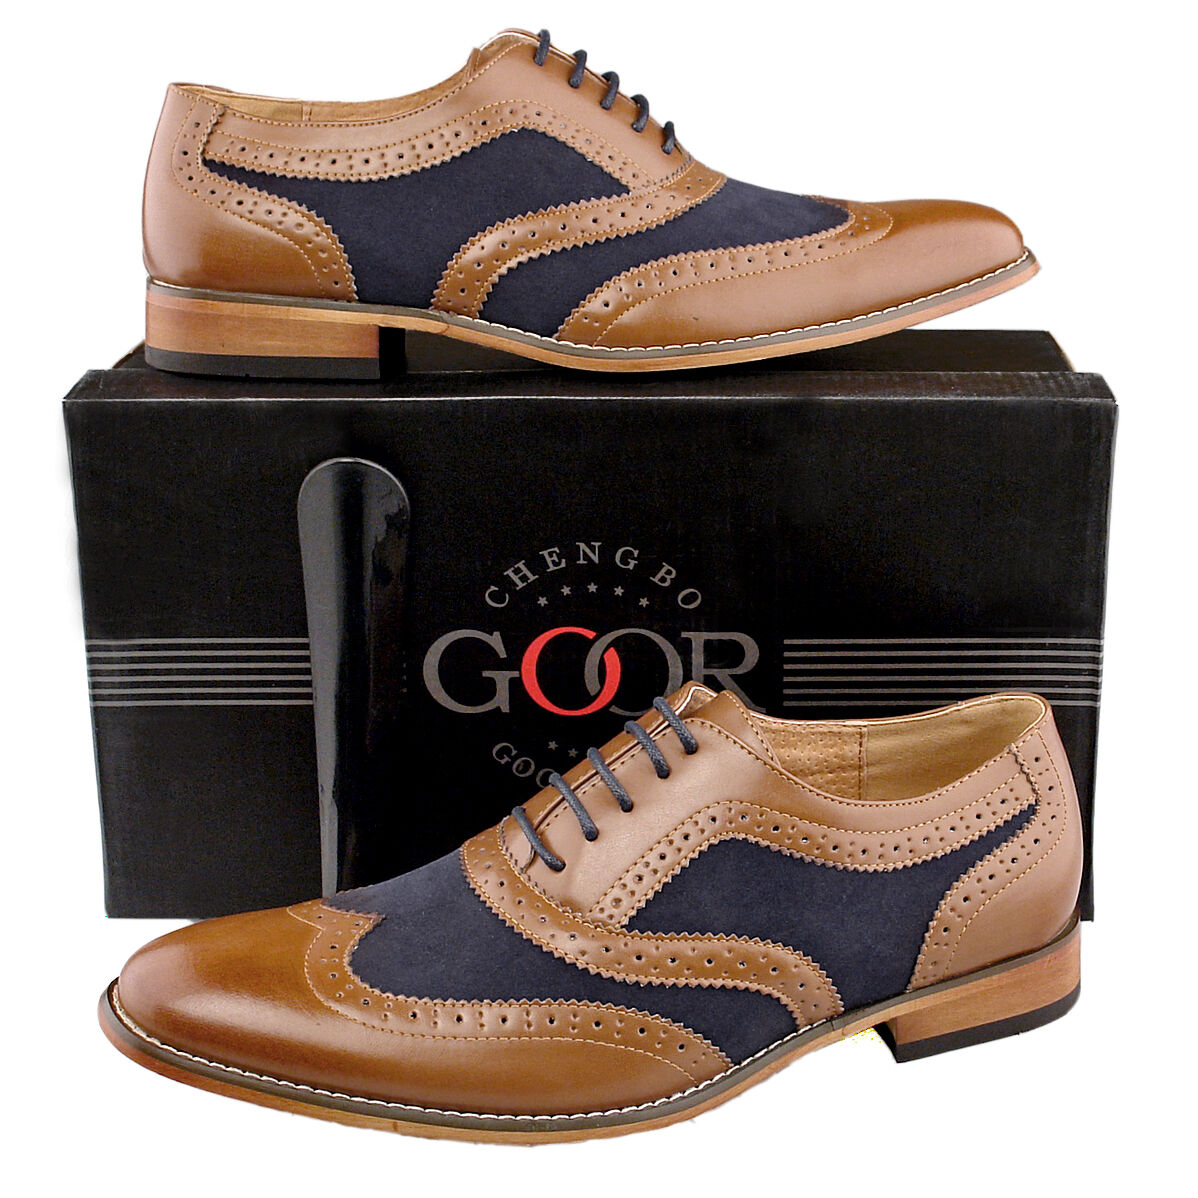 Mens New Formal Smart Suit Tan Navy Leather Lined Brogues shoes 6 7 8 9 0 11 12